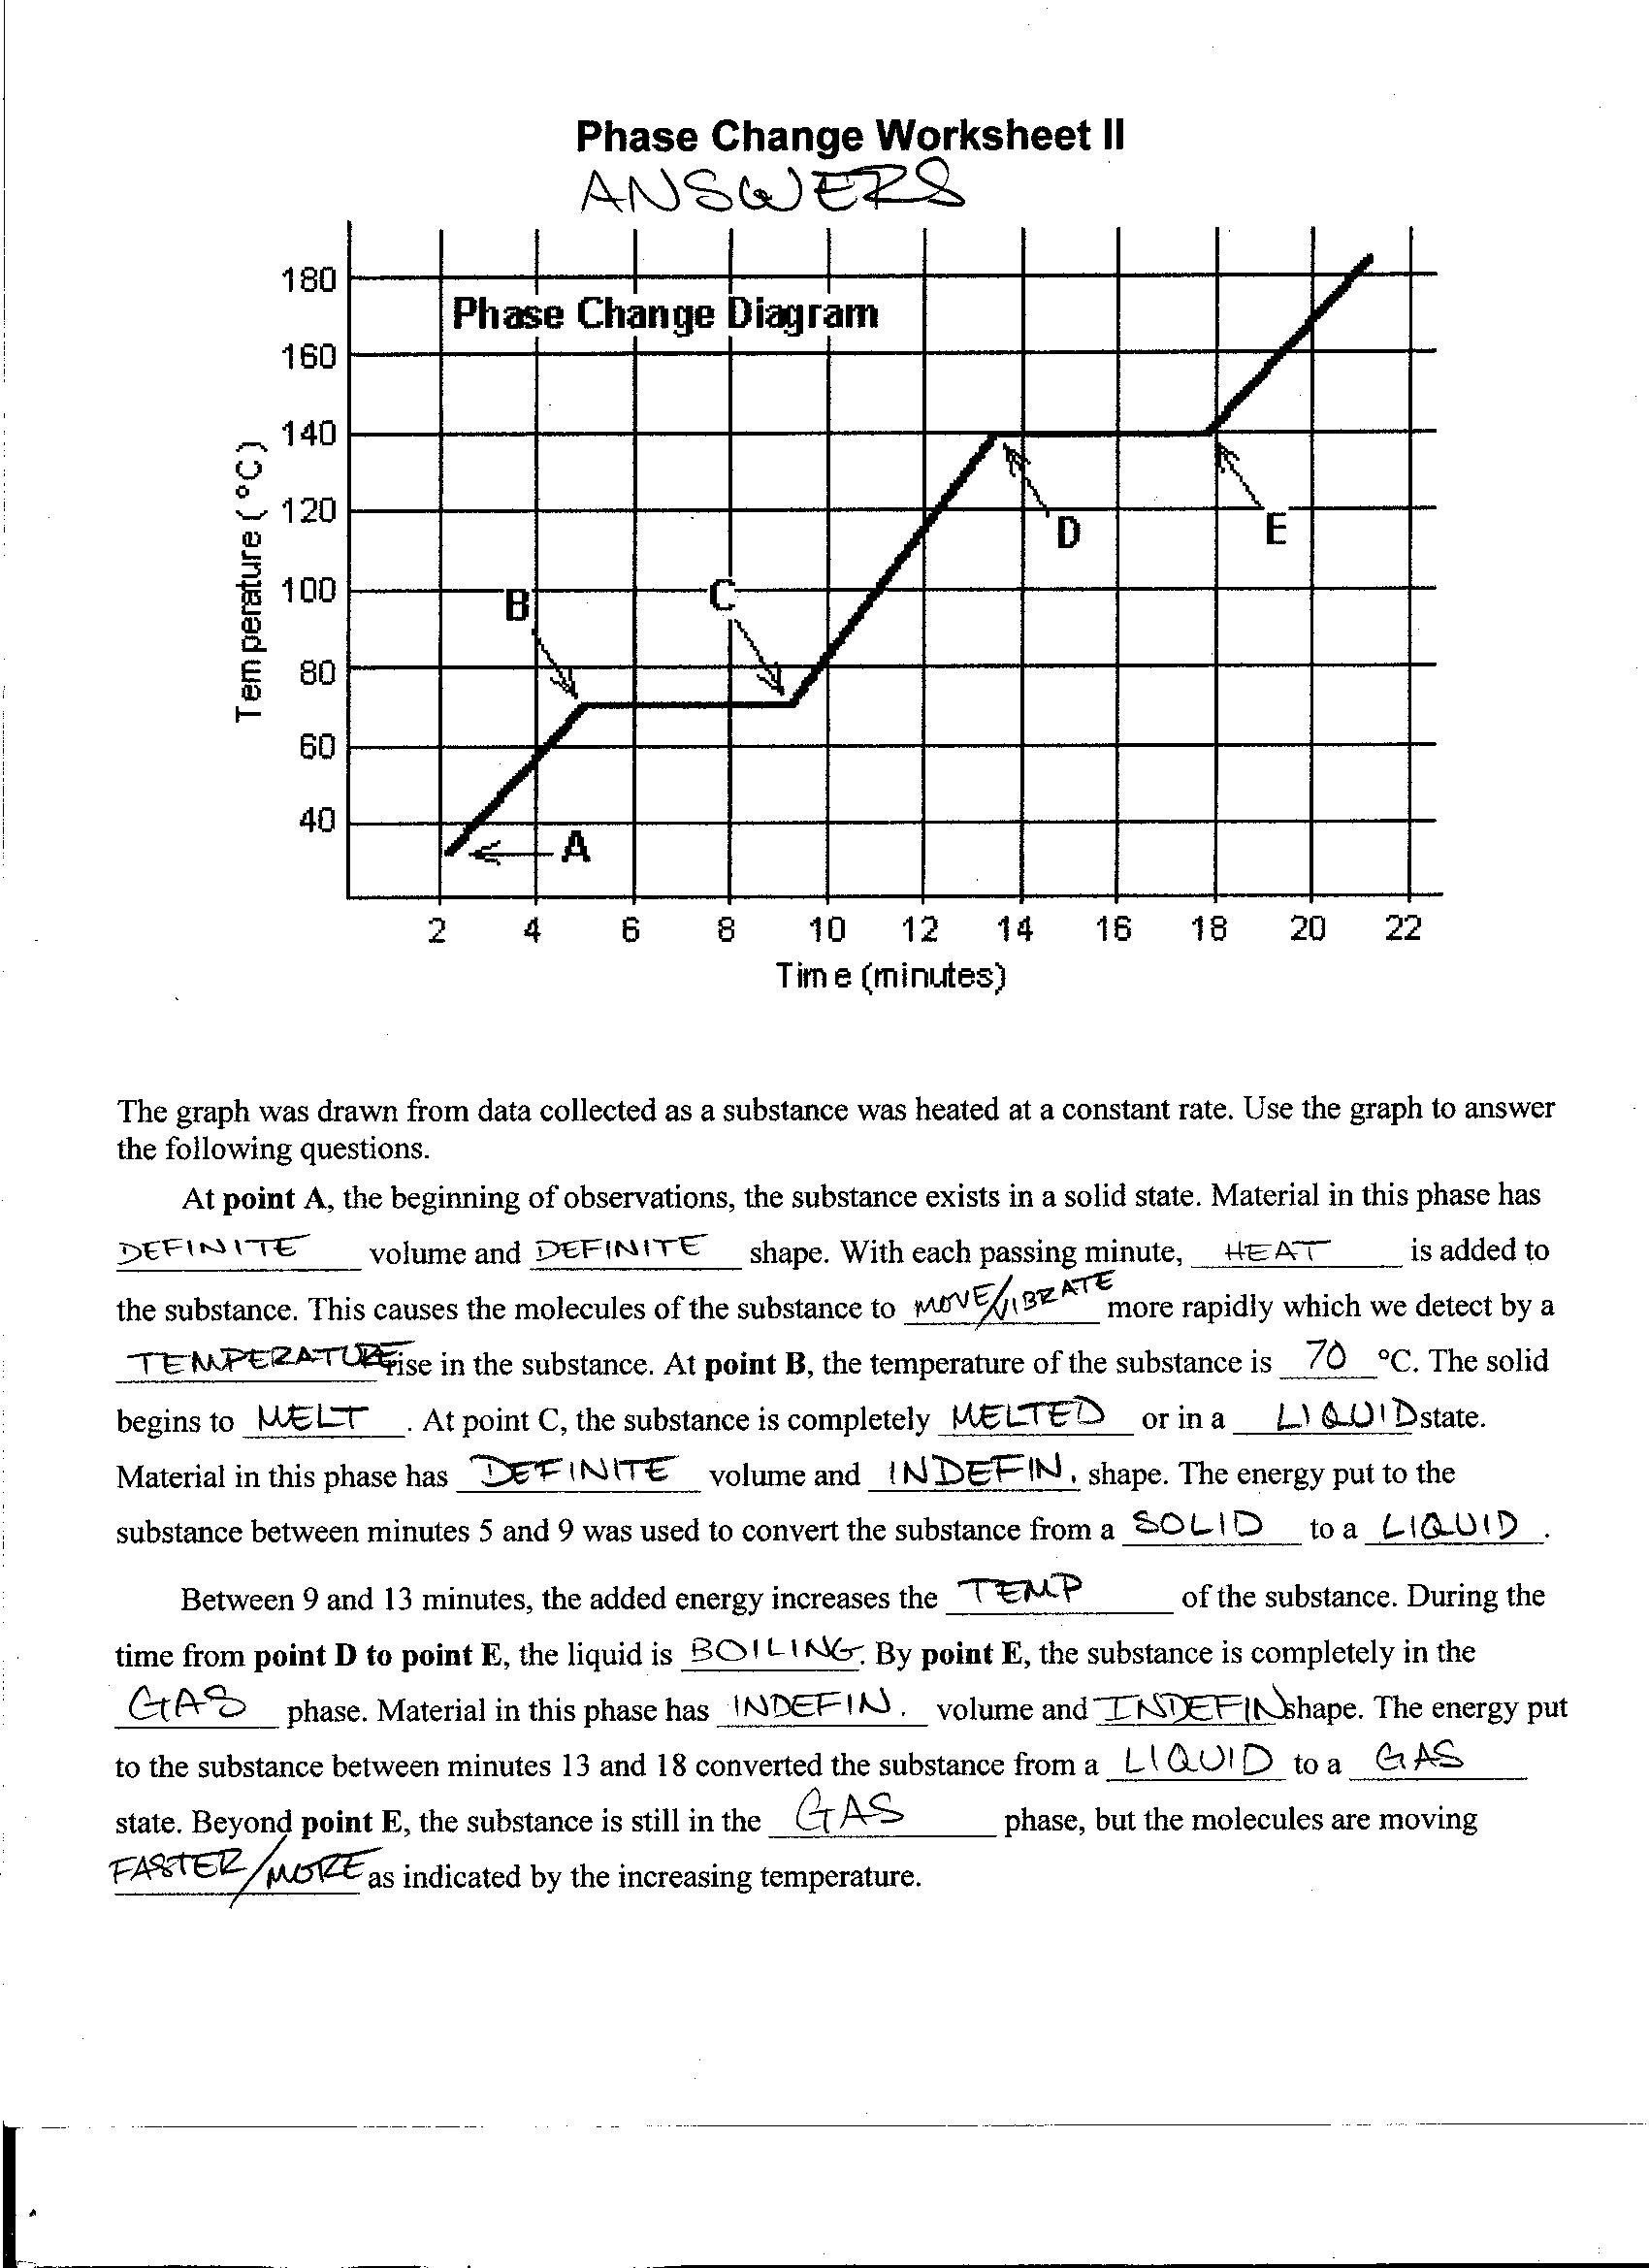 Worksheets Phase Diagram Worksheet Answers phase change worksheet with answers free worksheets library reading answer key betterlesson